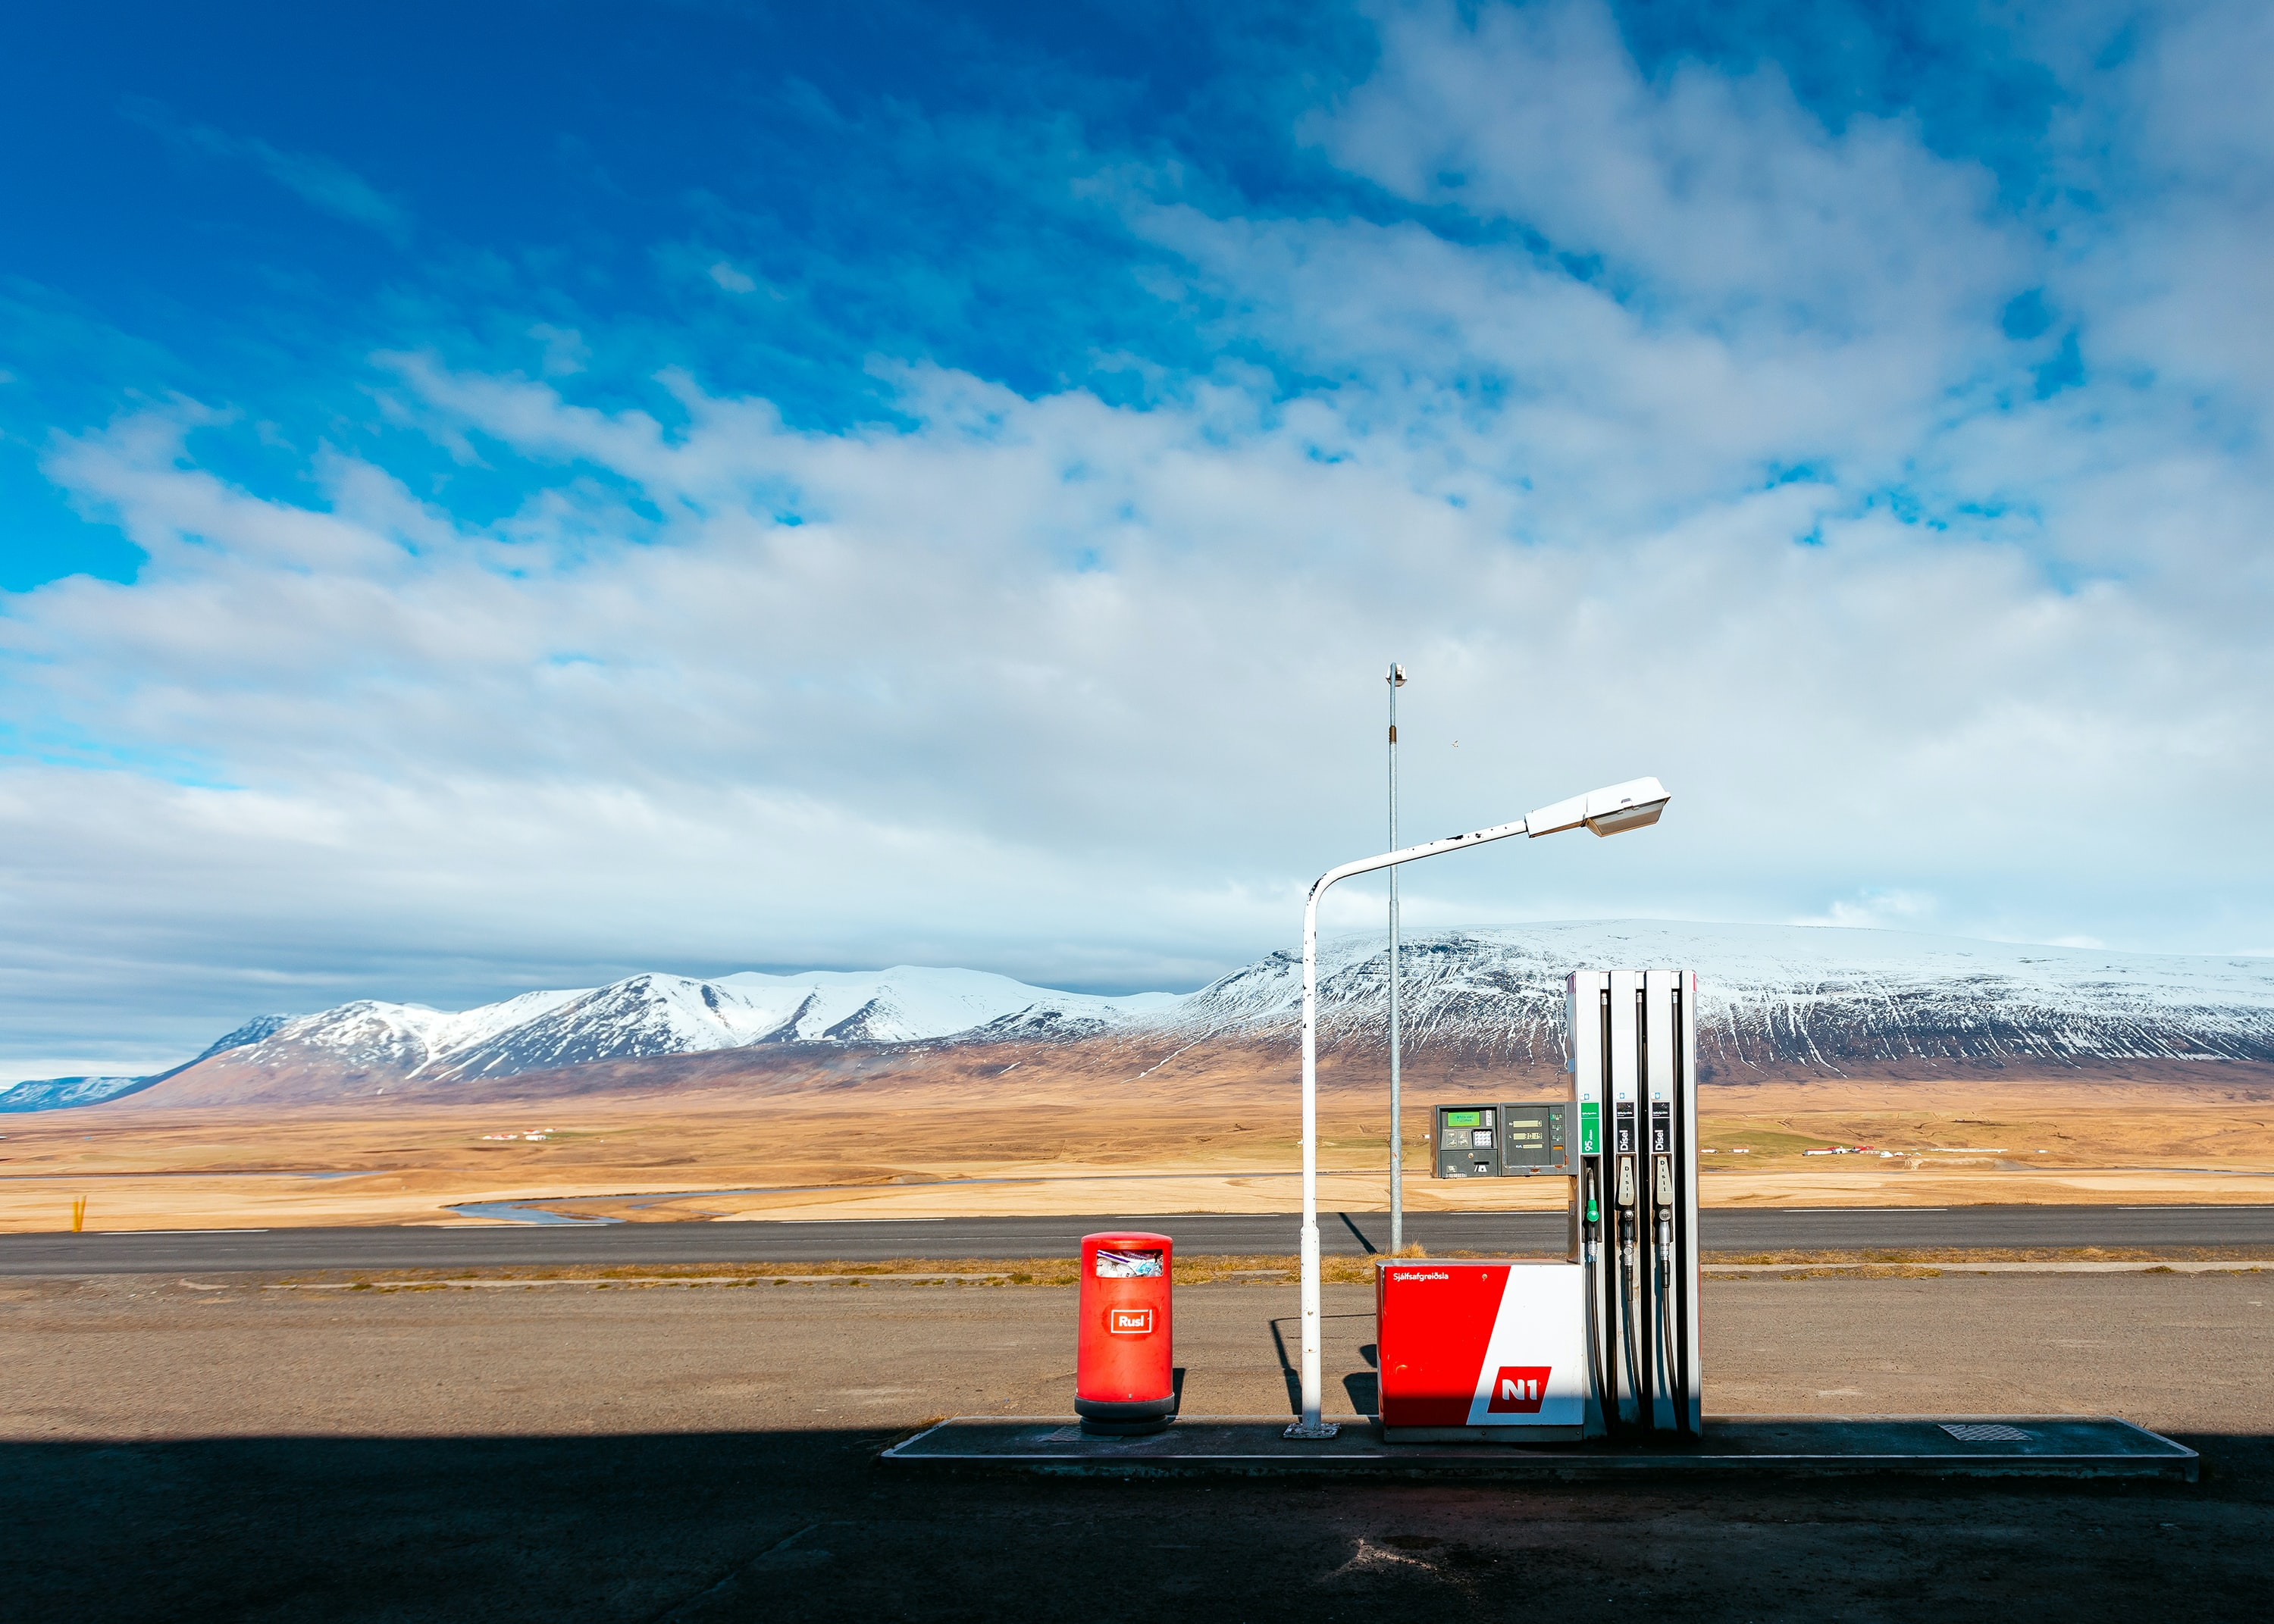 empty gas station near empty road facing snow capped mountain at daytime